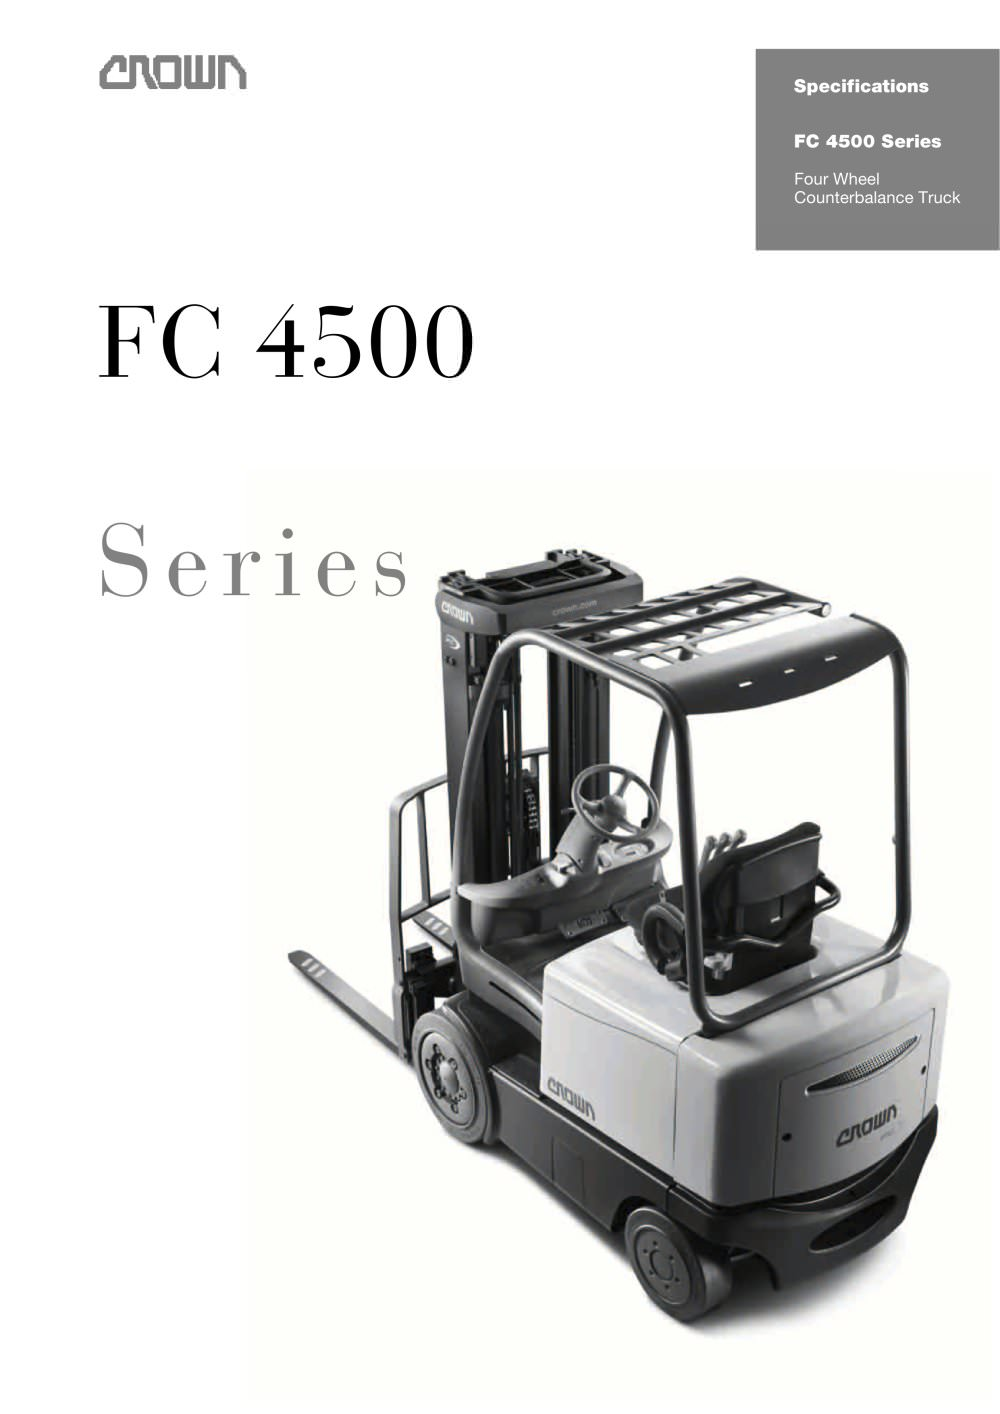 Electric Forklift 4-Wheel, FC 4500 - 1 / 6 Pages